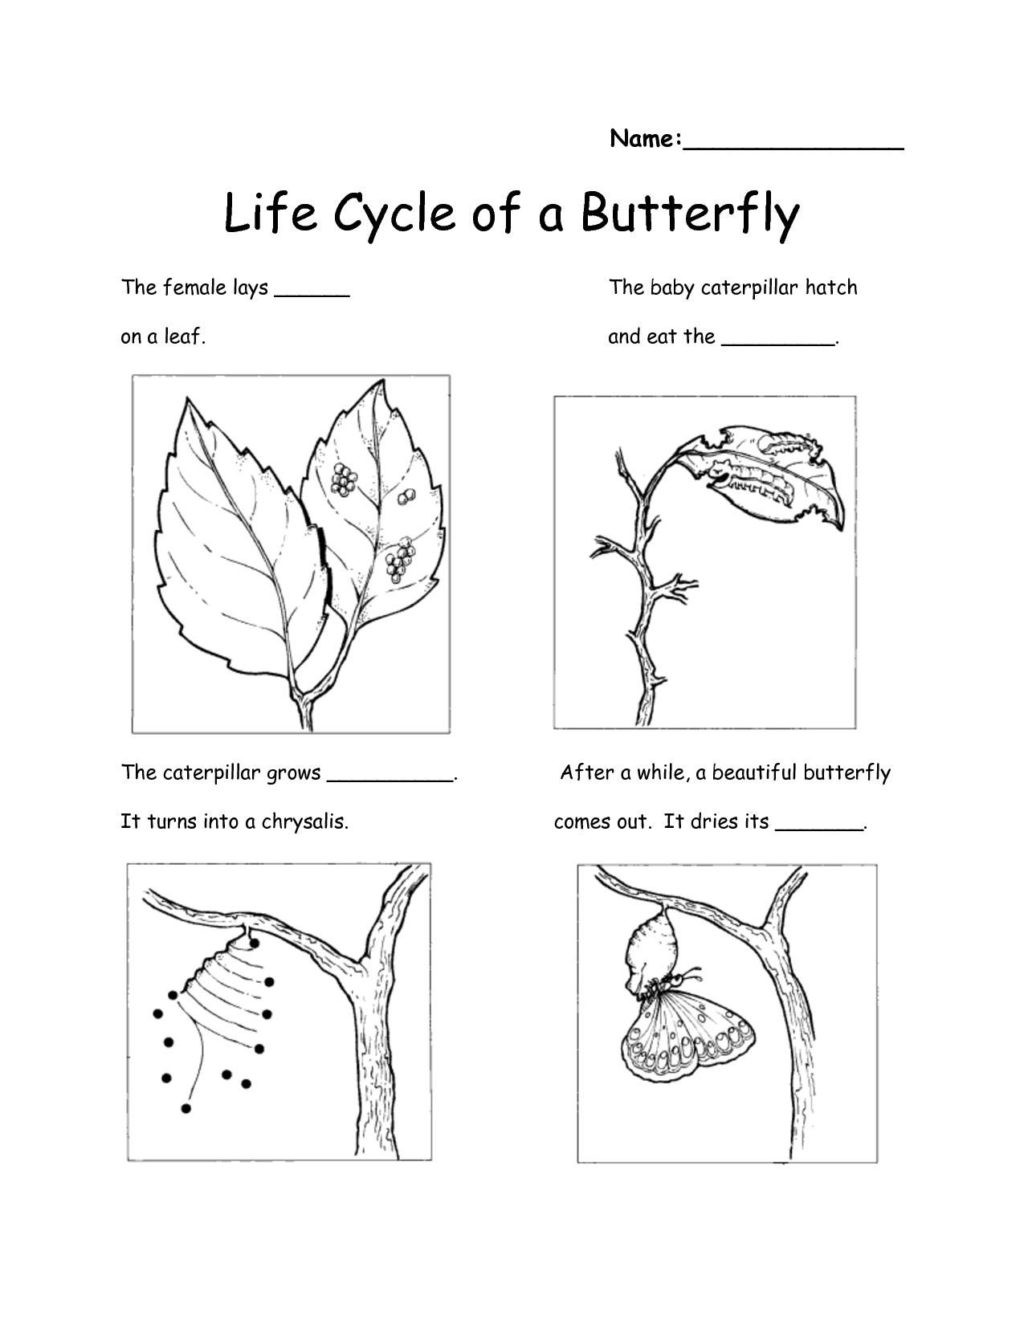 Second Grade Science Worksheets Free Worksheet Worksheet astonishing Science Worksheets for